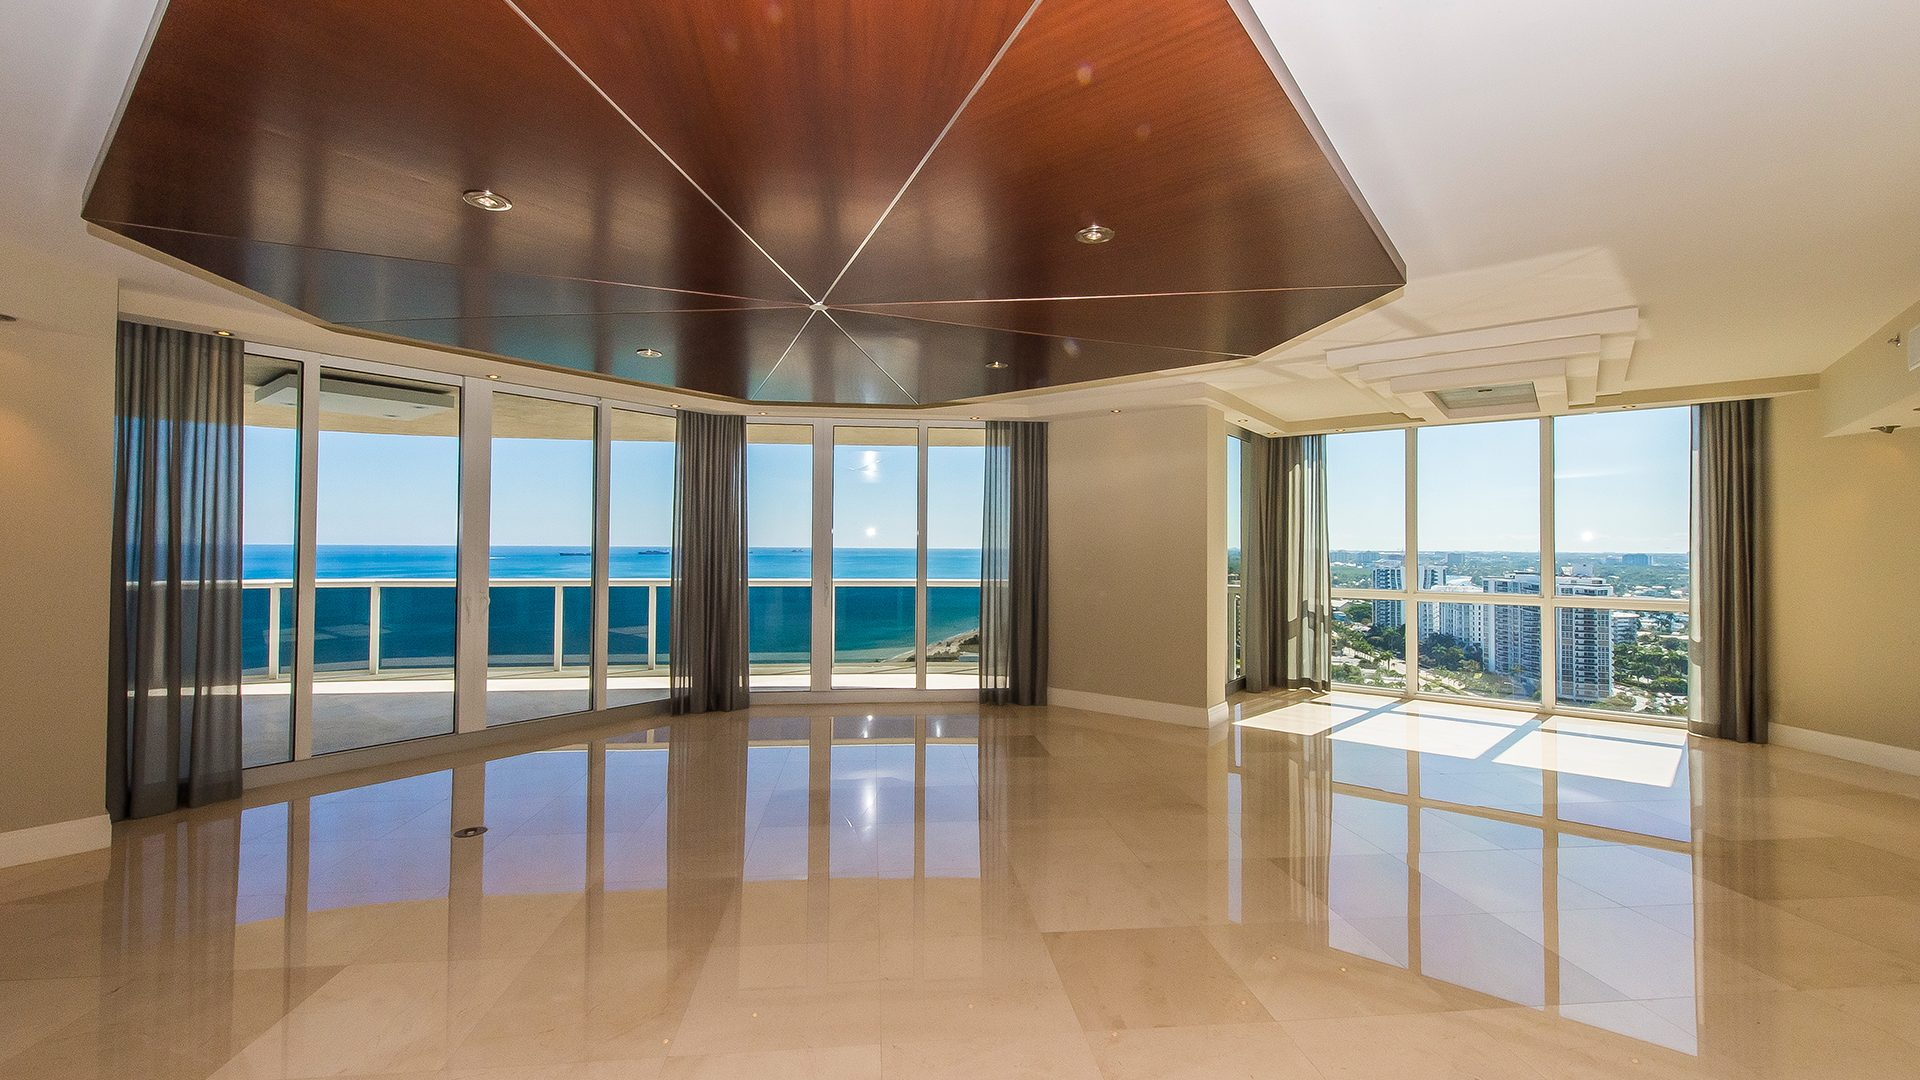 Residence 2310 For Sale at L'Hermitage, Fort Lauderdale Florida 33308